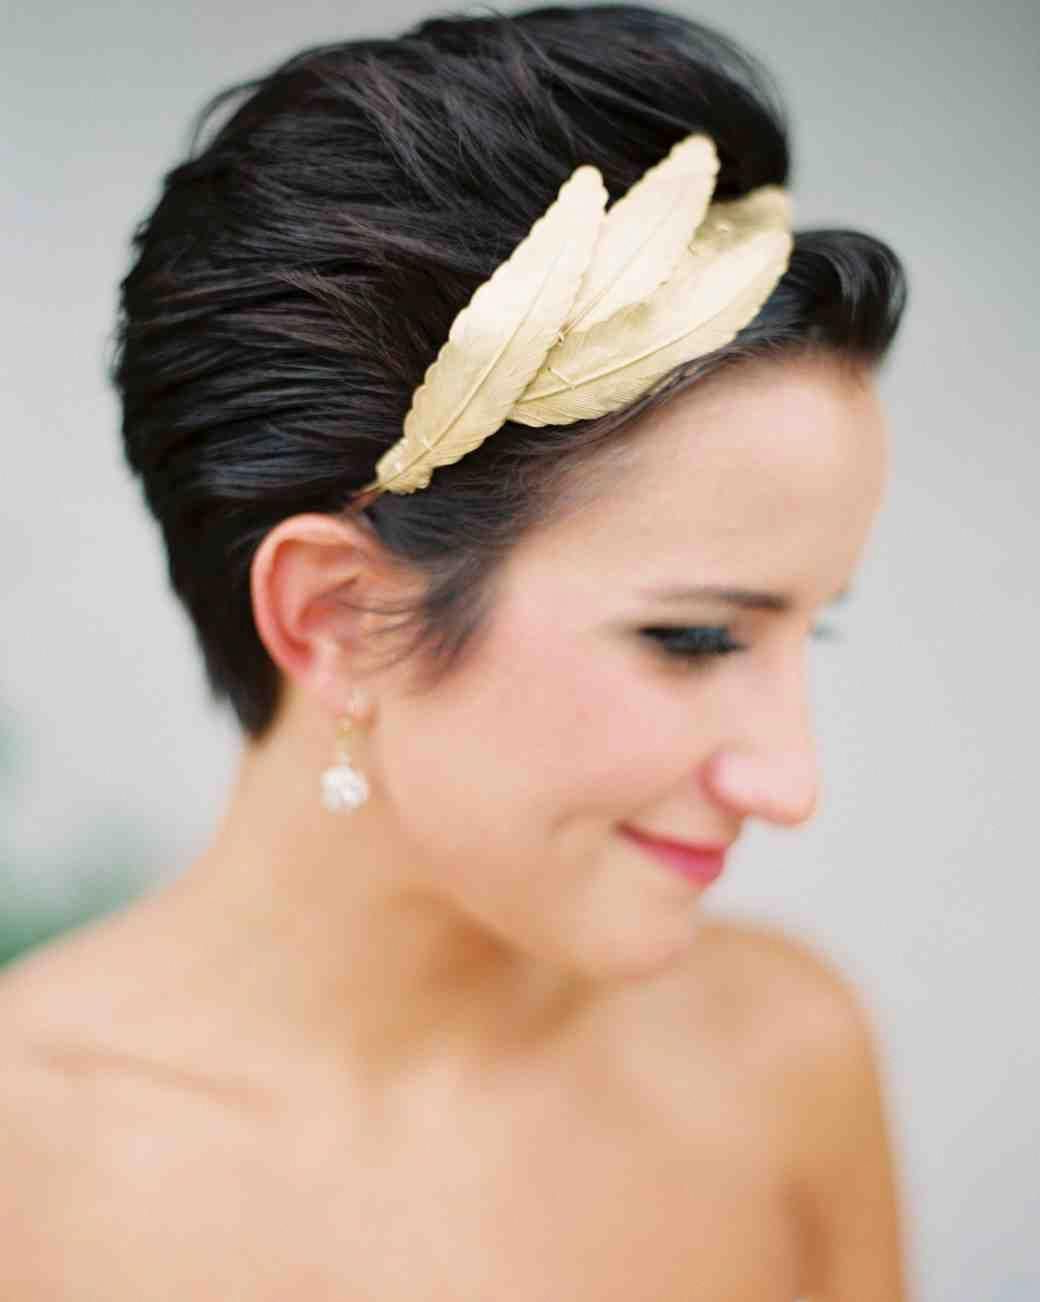 Wedding And Bridal For Preferred Short Wedding Hairstyles With A Swanky Headband (Gallery 2 of 20)